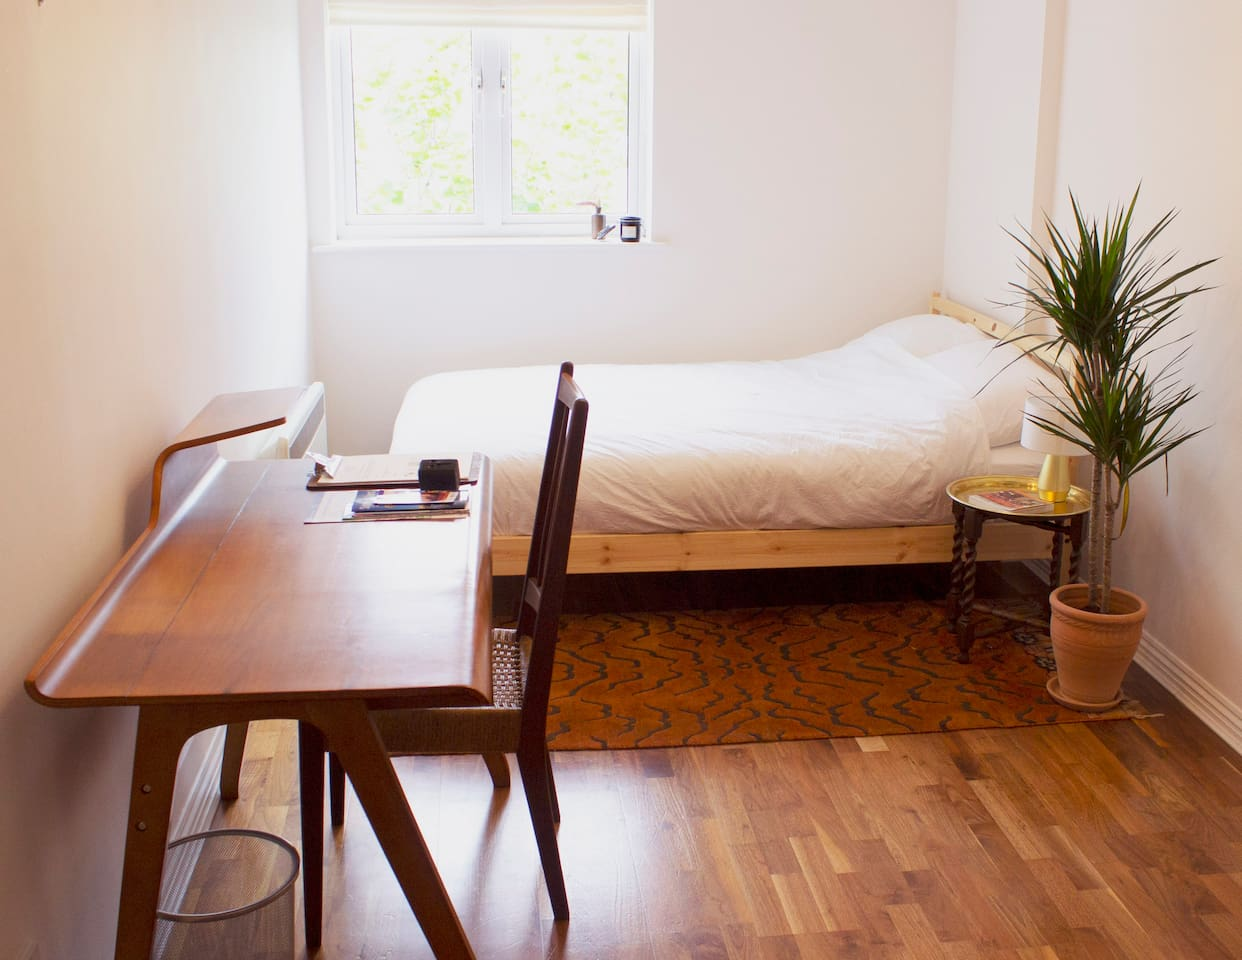 Double bed / full body mirror / desk and chair / bedside table and lamps / wardrobe / hairdryer/ adaptor / tourist information